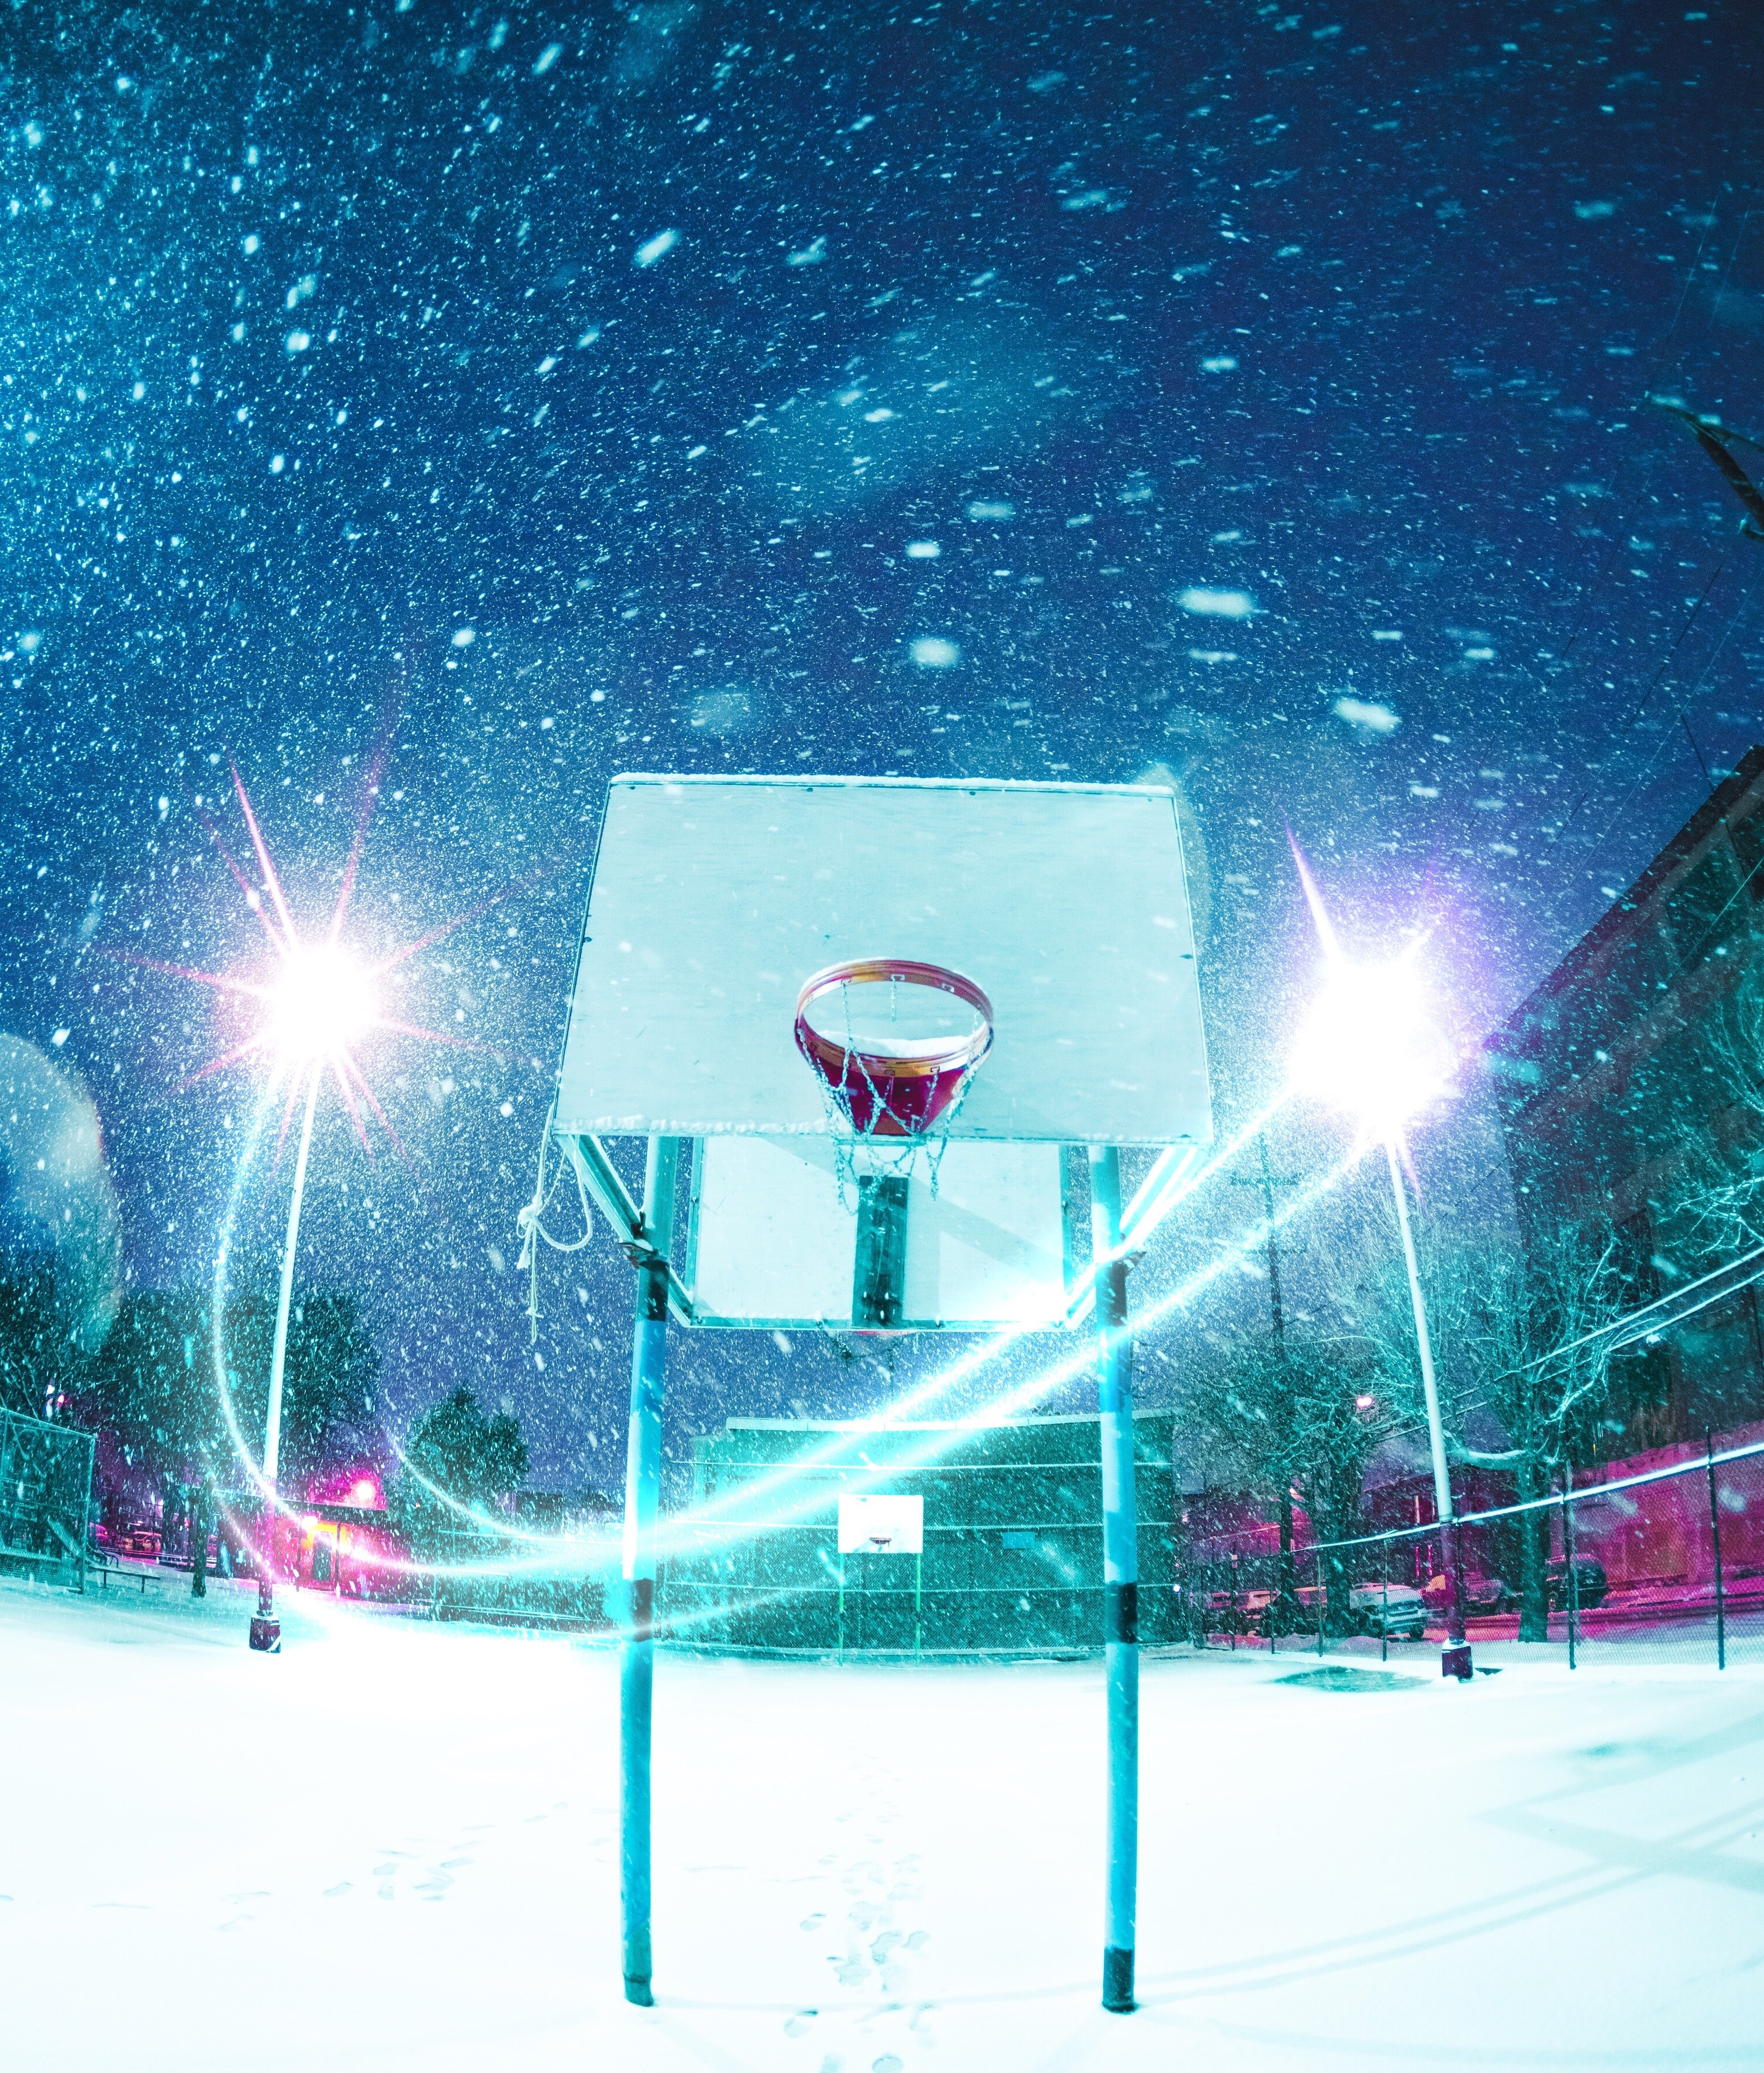 110743 Screensavers and Wallpapers Basketball for phone. Download Sports, Basketball Hoop, Basketball Ring, Basketball, Playground, Platform, Snow, Shine, Light pictures for free